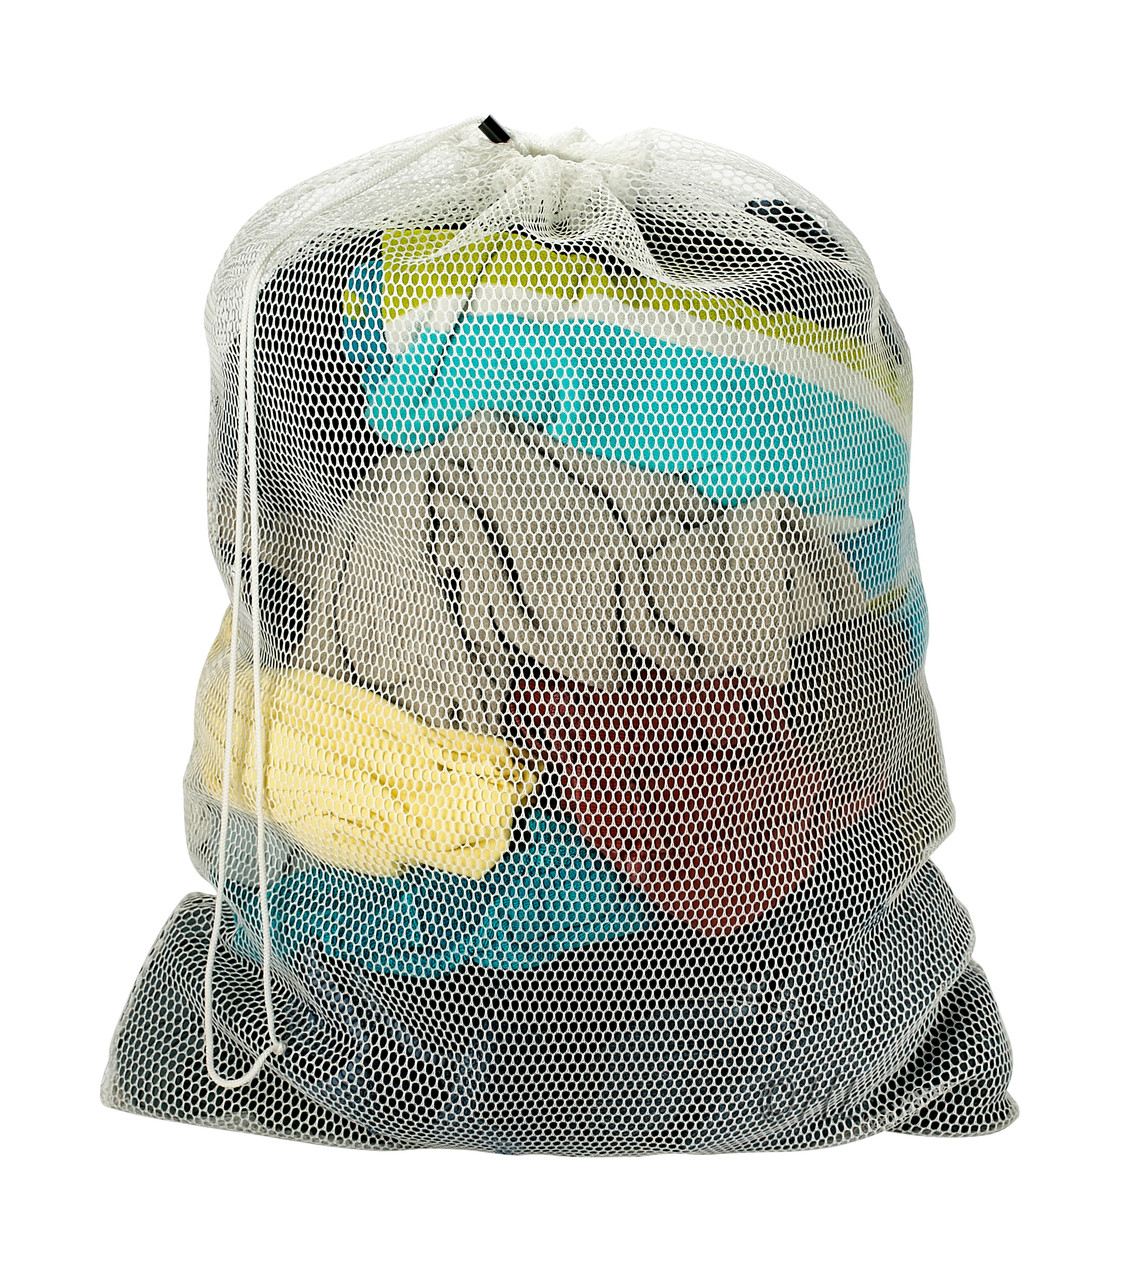 Mesh Laundry Bag Assorted Colors 24 Quot X 36 Quot